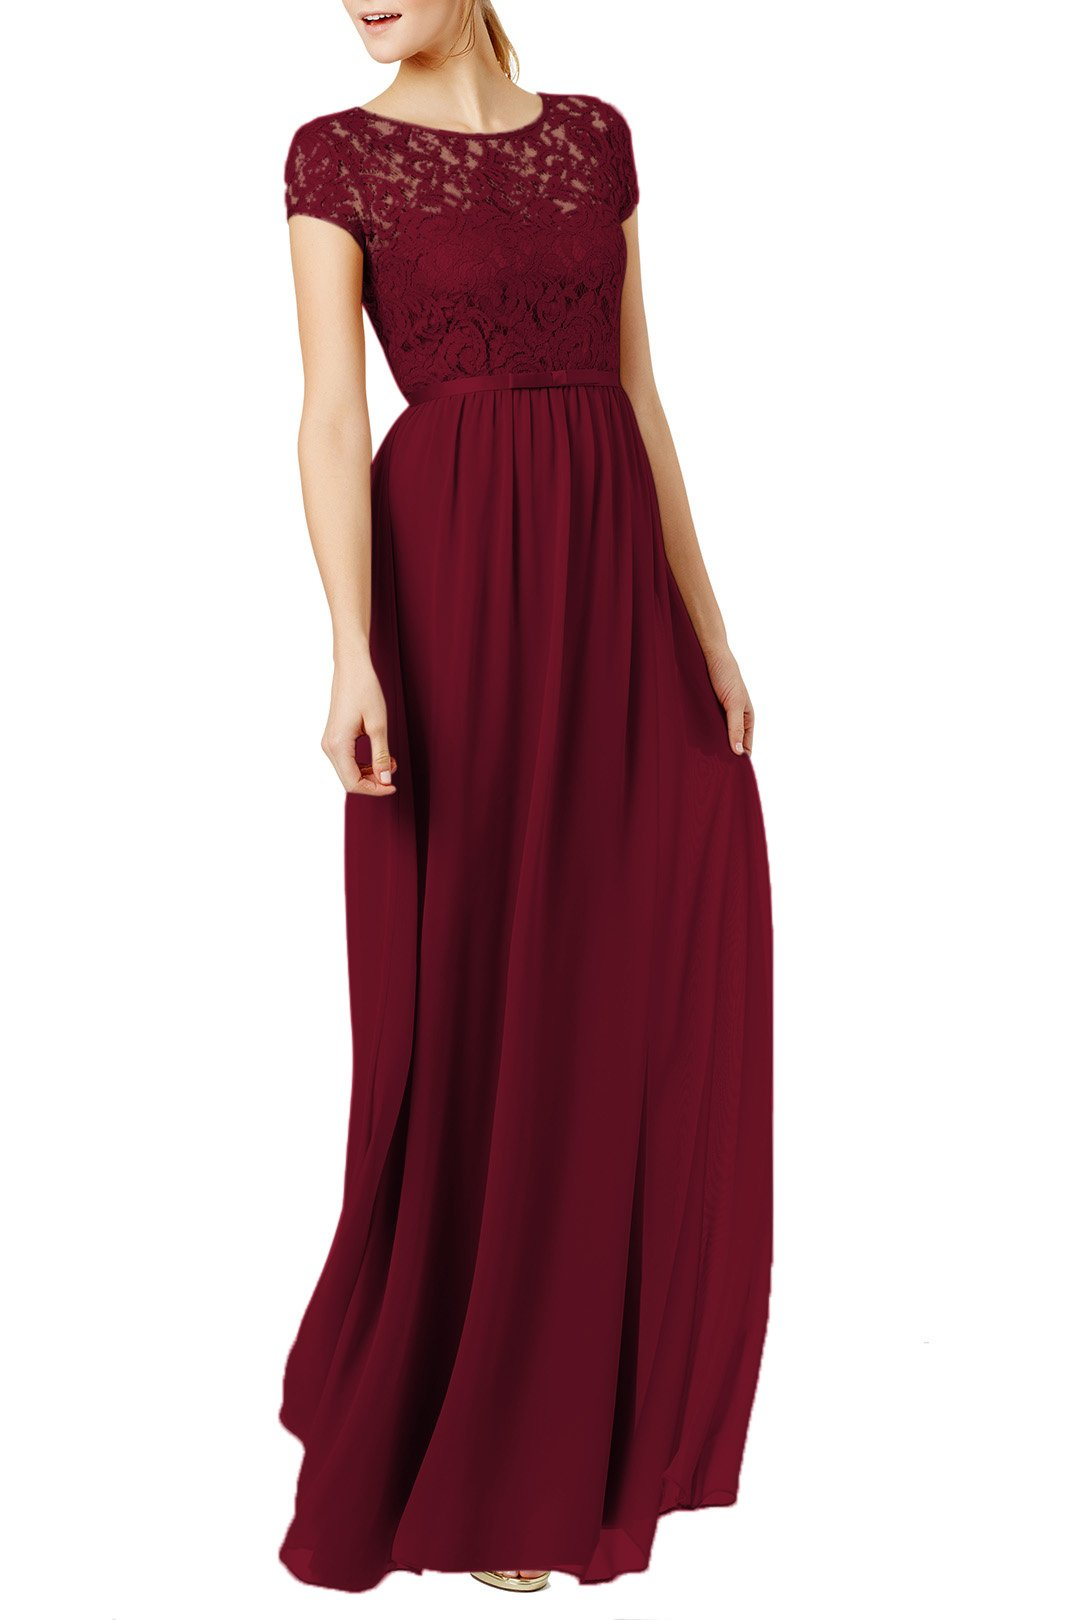 REPHYLLIS Women's Lace Cap Sleeve Evening Party Maxi Wedding Dress(XL,Burgundy)